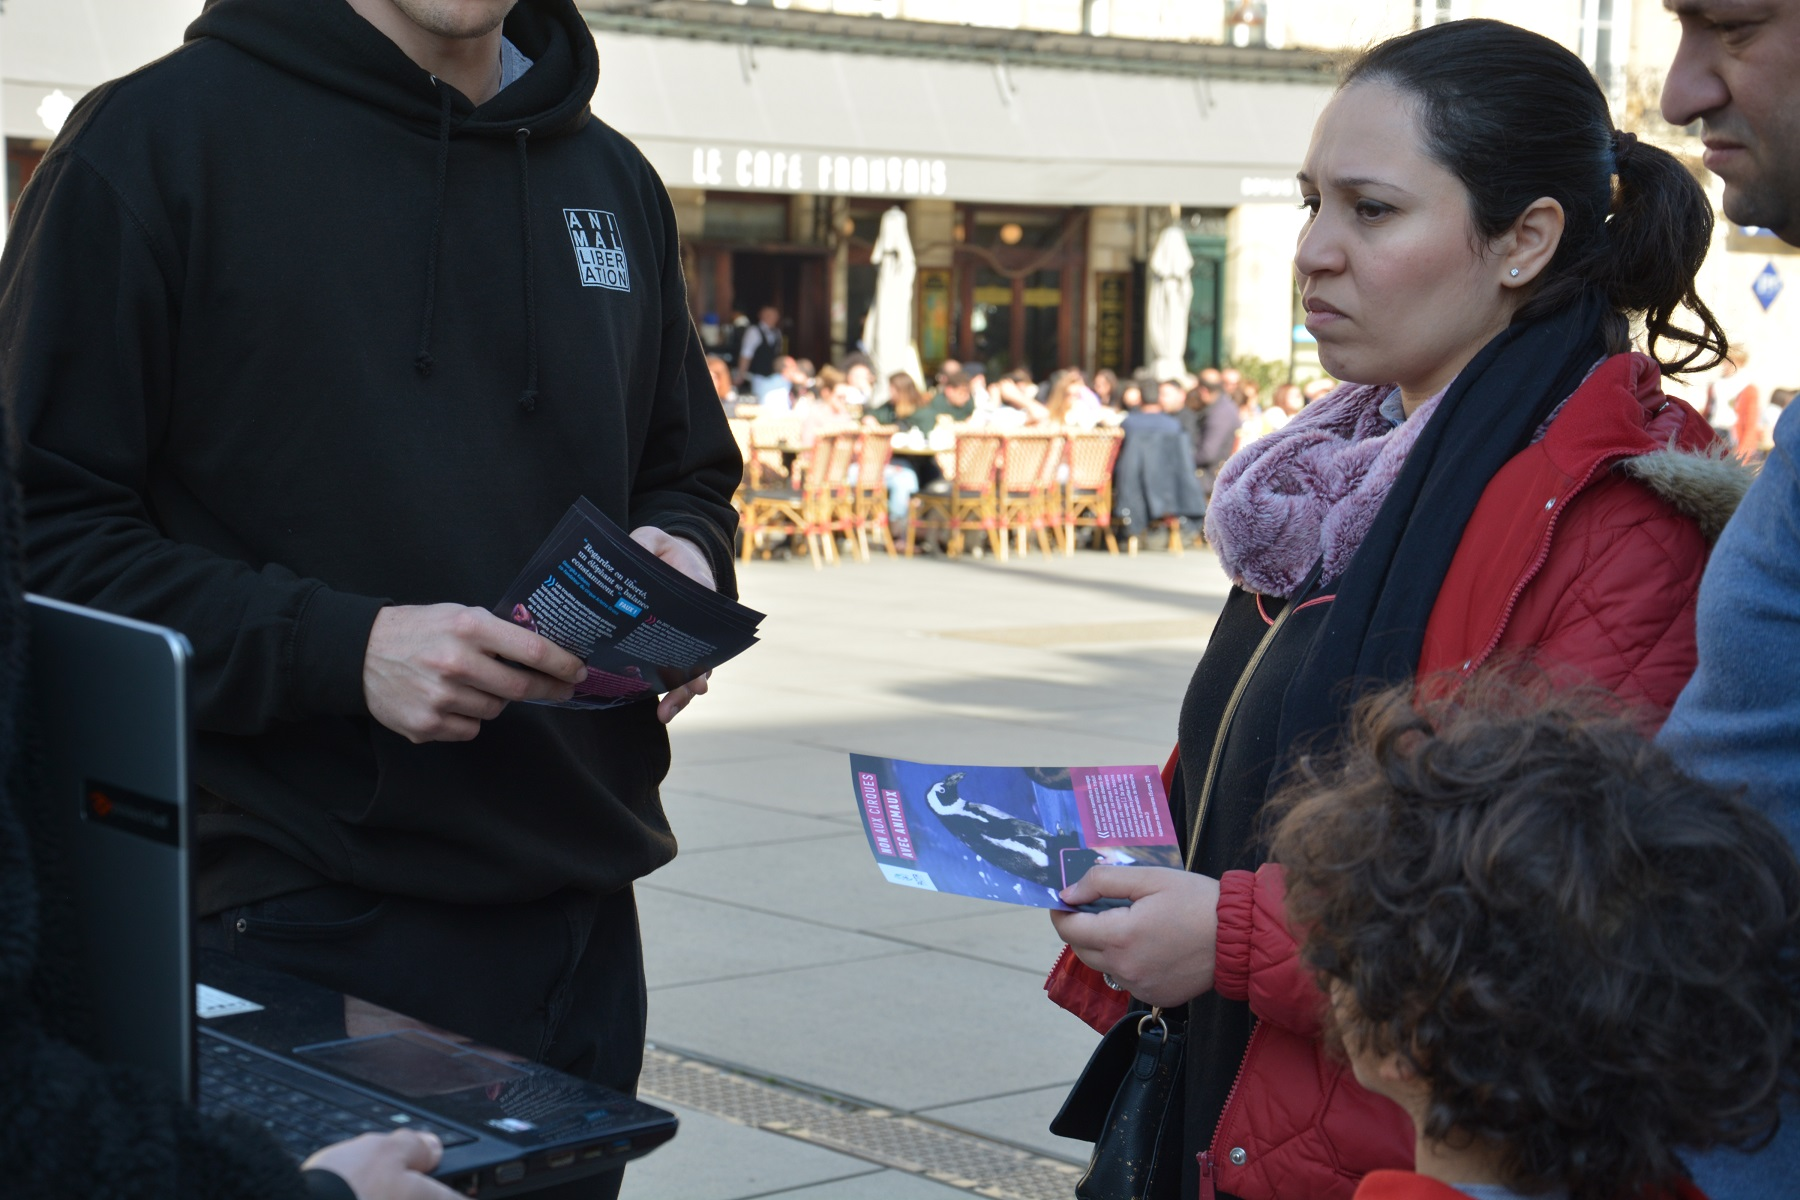 manifestation_mairie_bordeaux_animaux_cirques_tractage